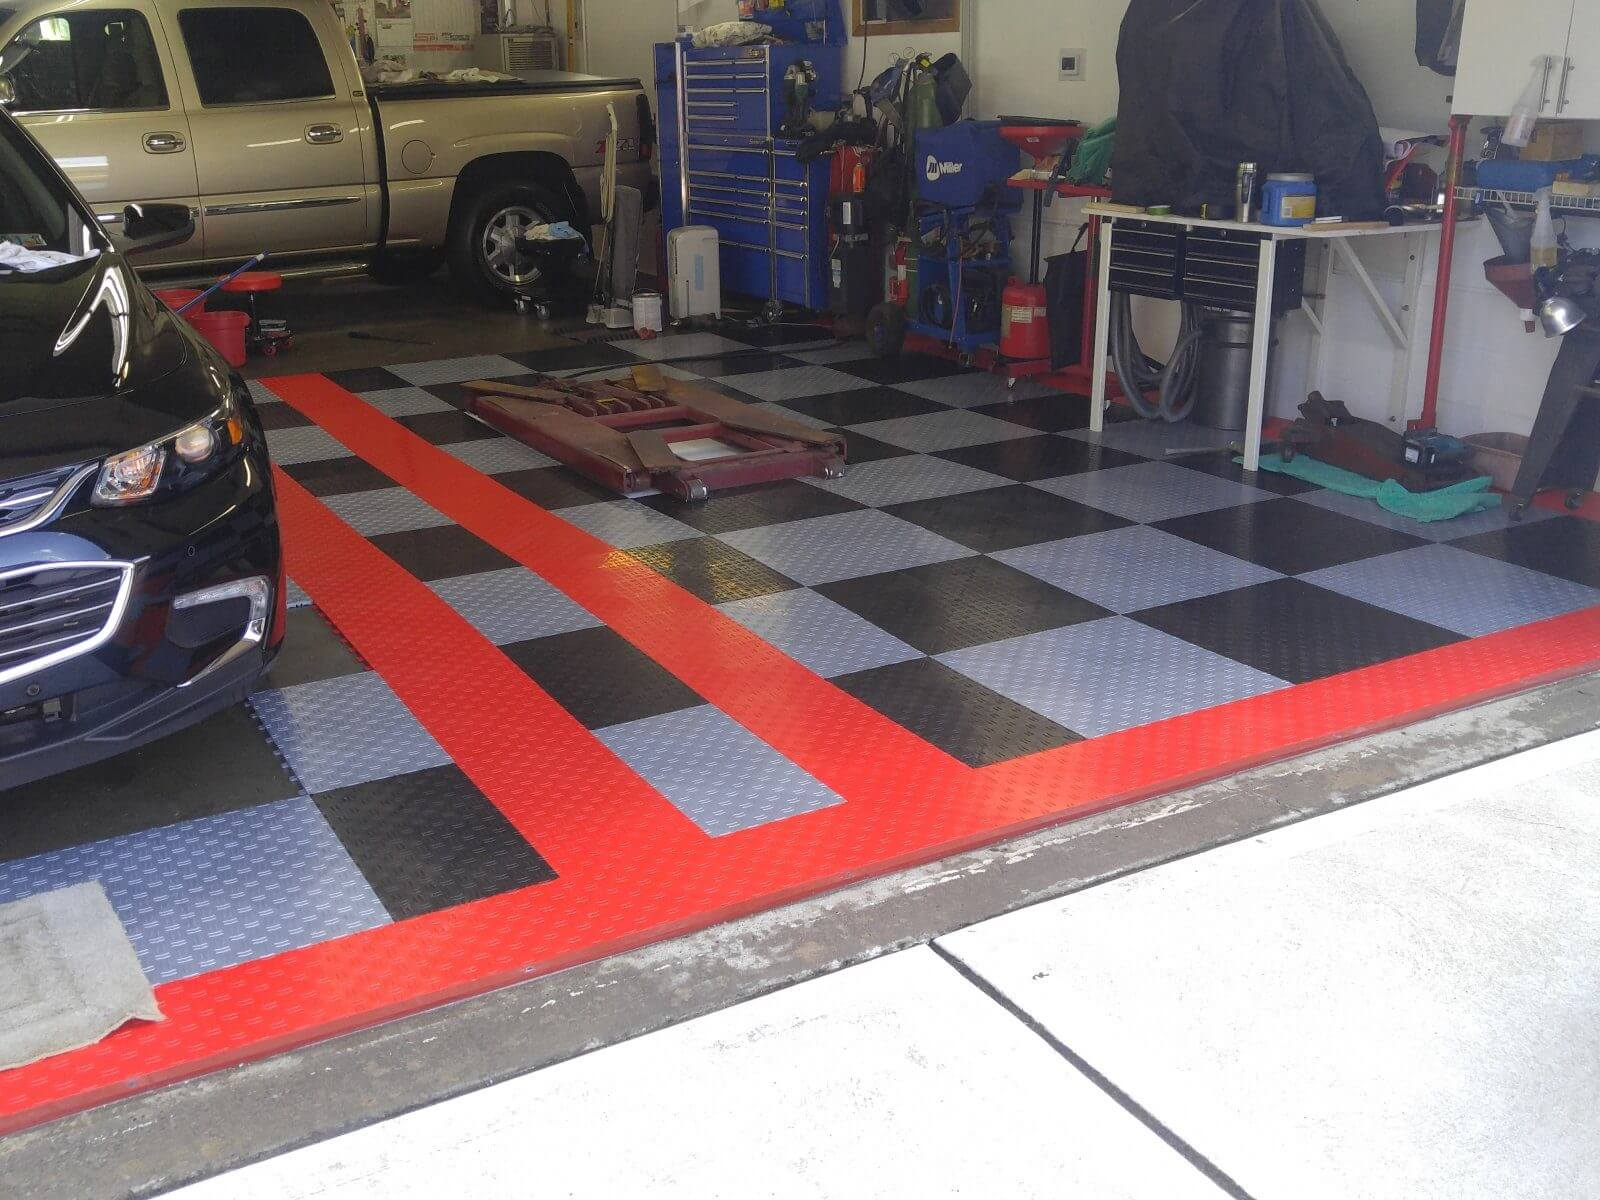 Why truelock hd garage floor tiles randy zs black and silver with double red border tiled garage floor dailygadgetfo Choice Image